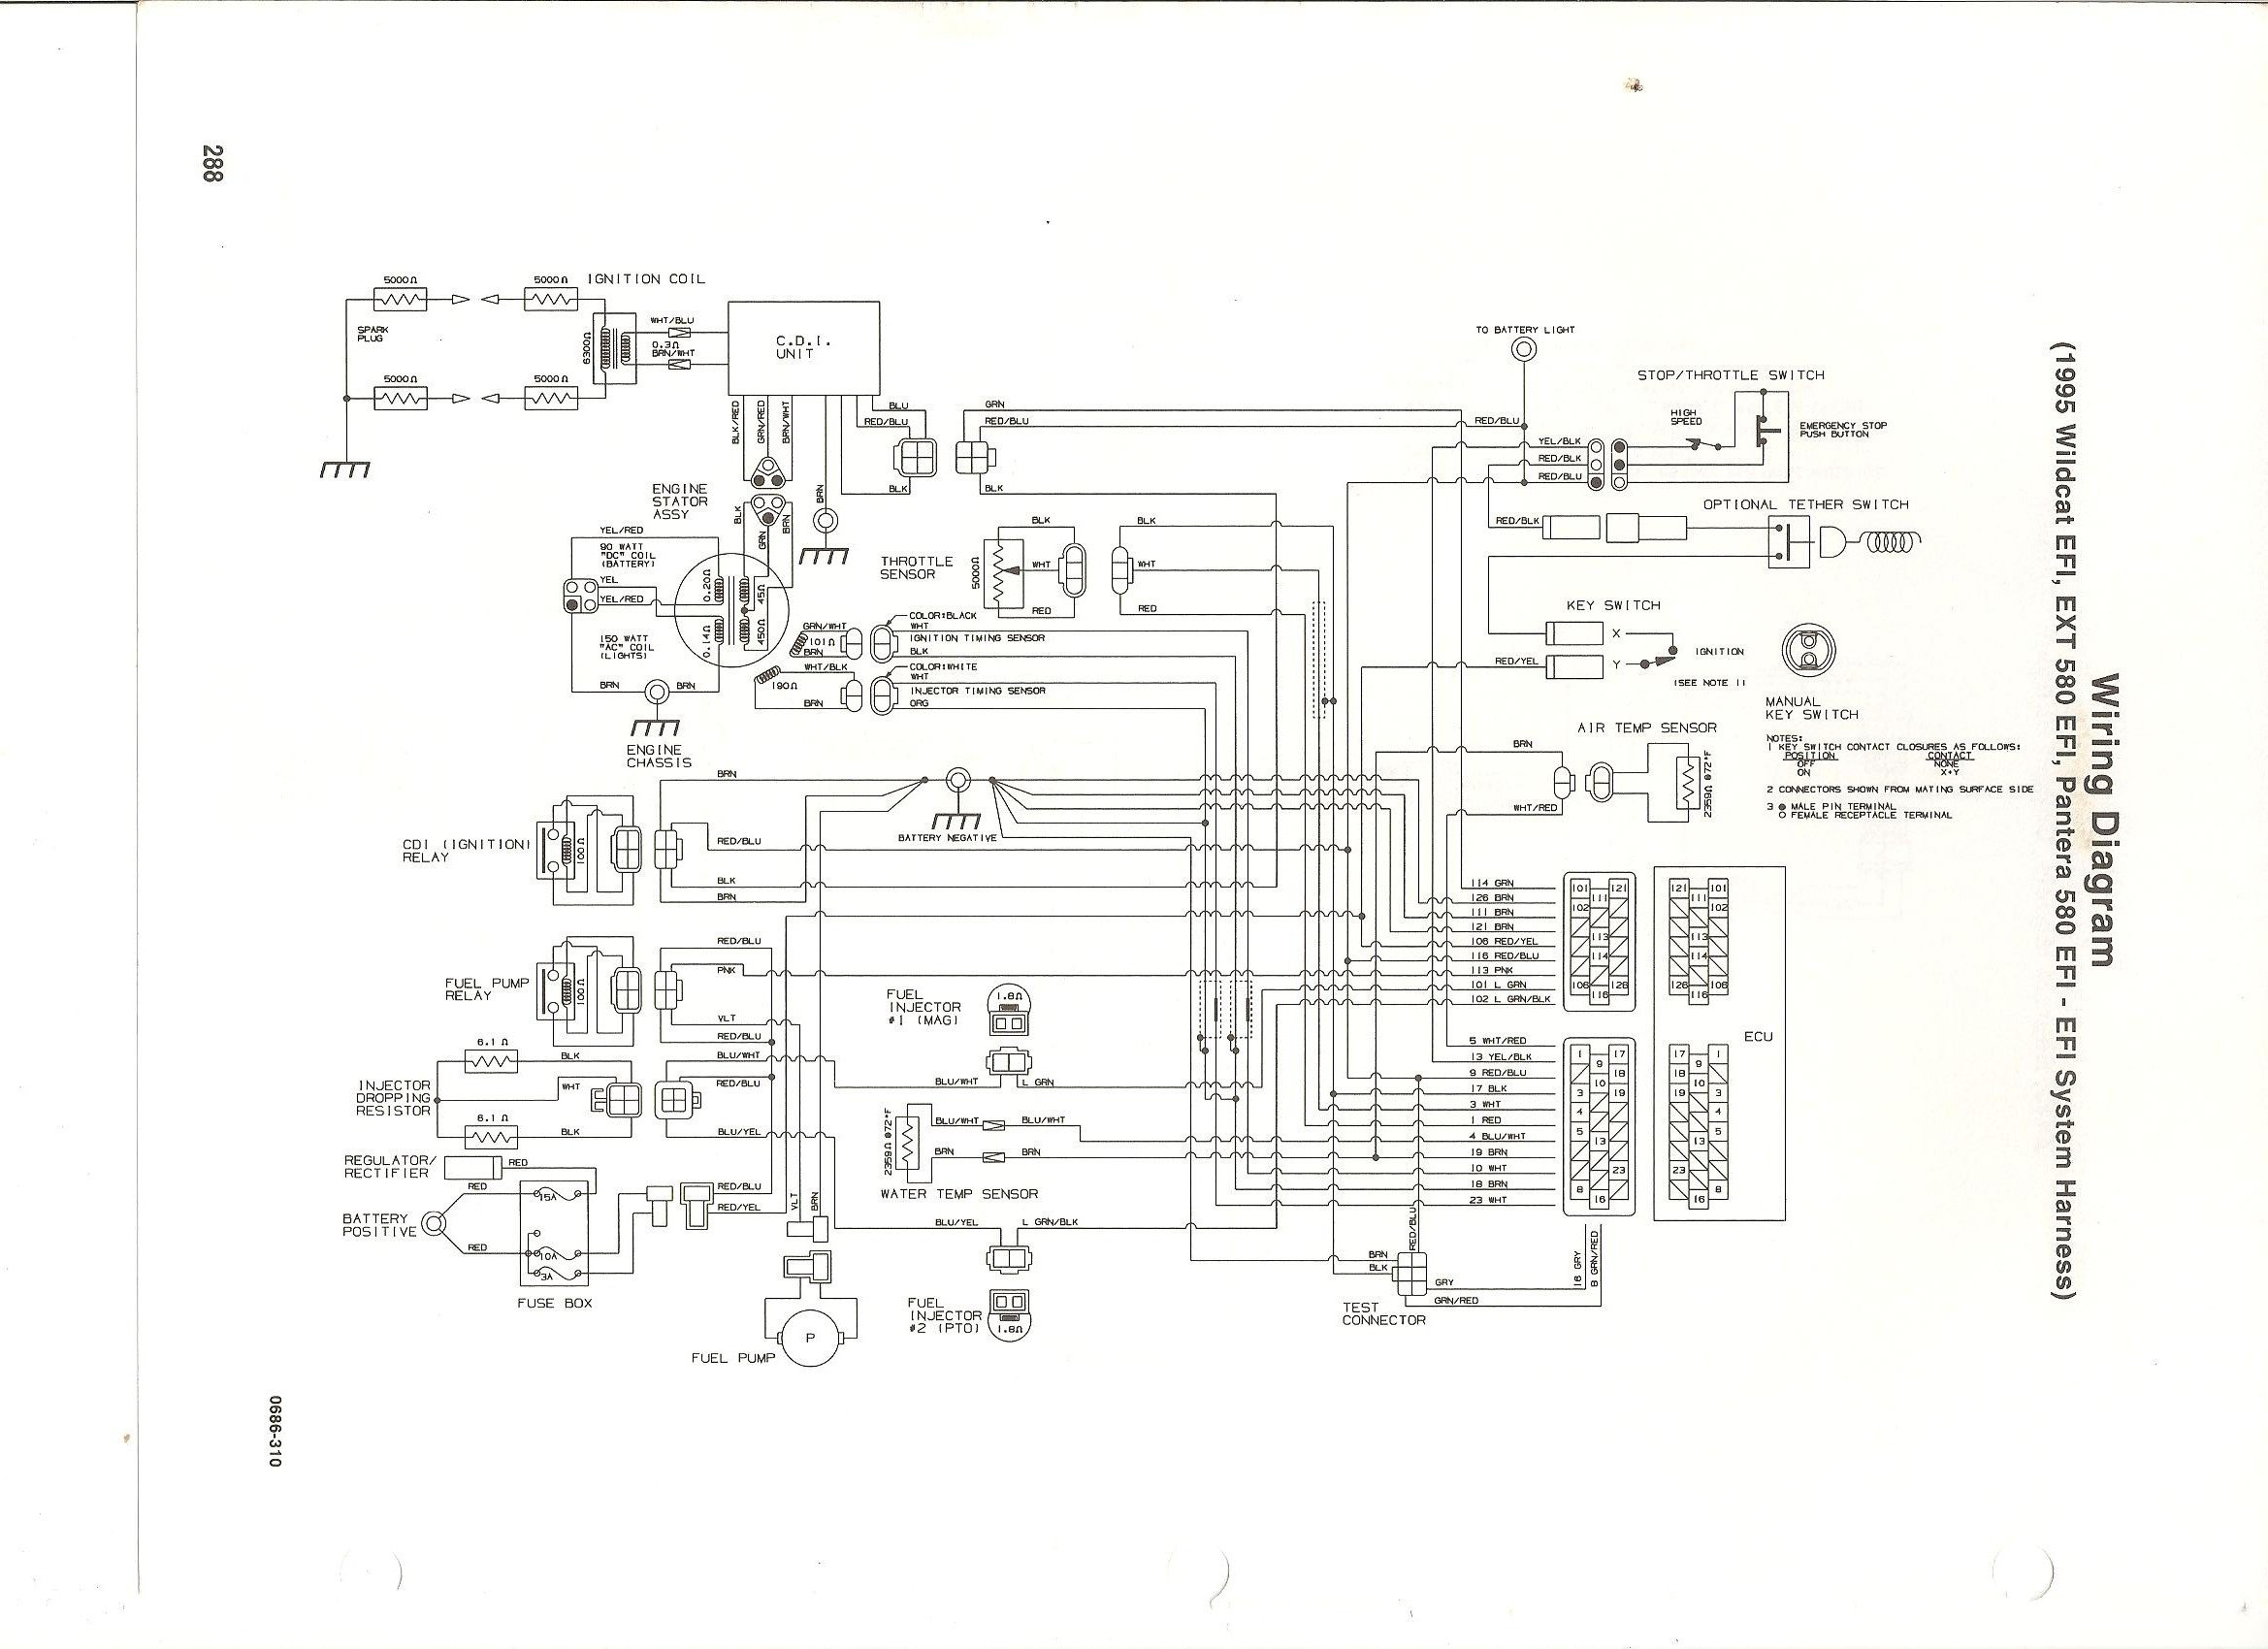 219382d1354396875 94 ext 580 electrical schematic efi wiring diagram 2005 polaris ranger 500 wiring diagram wirdig readingrat net 2005 polaris ranger 700 xp efi wiring diagram at readyjetset.co